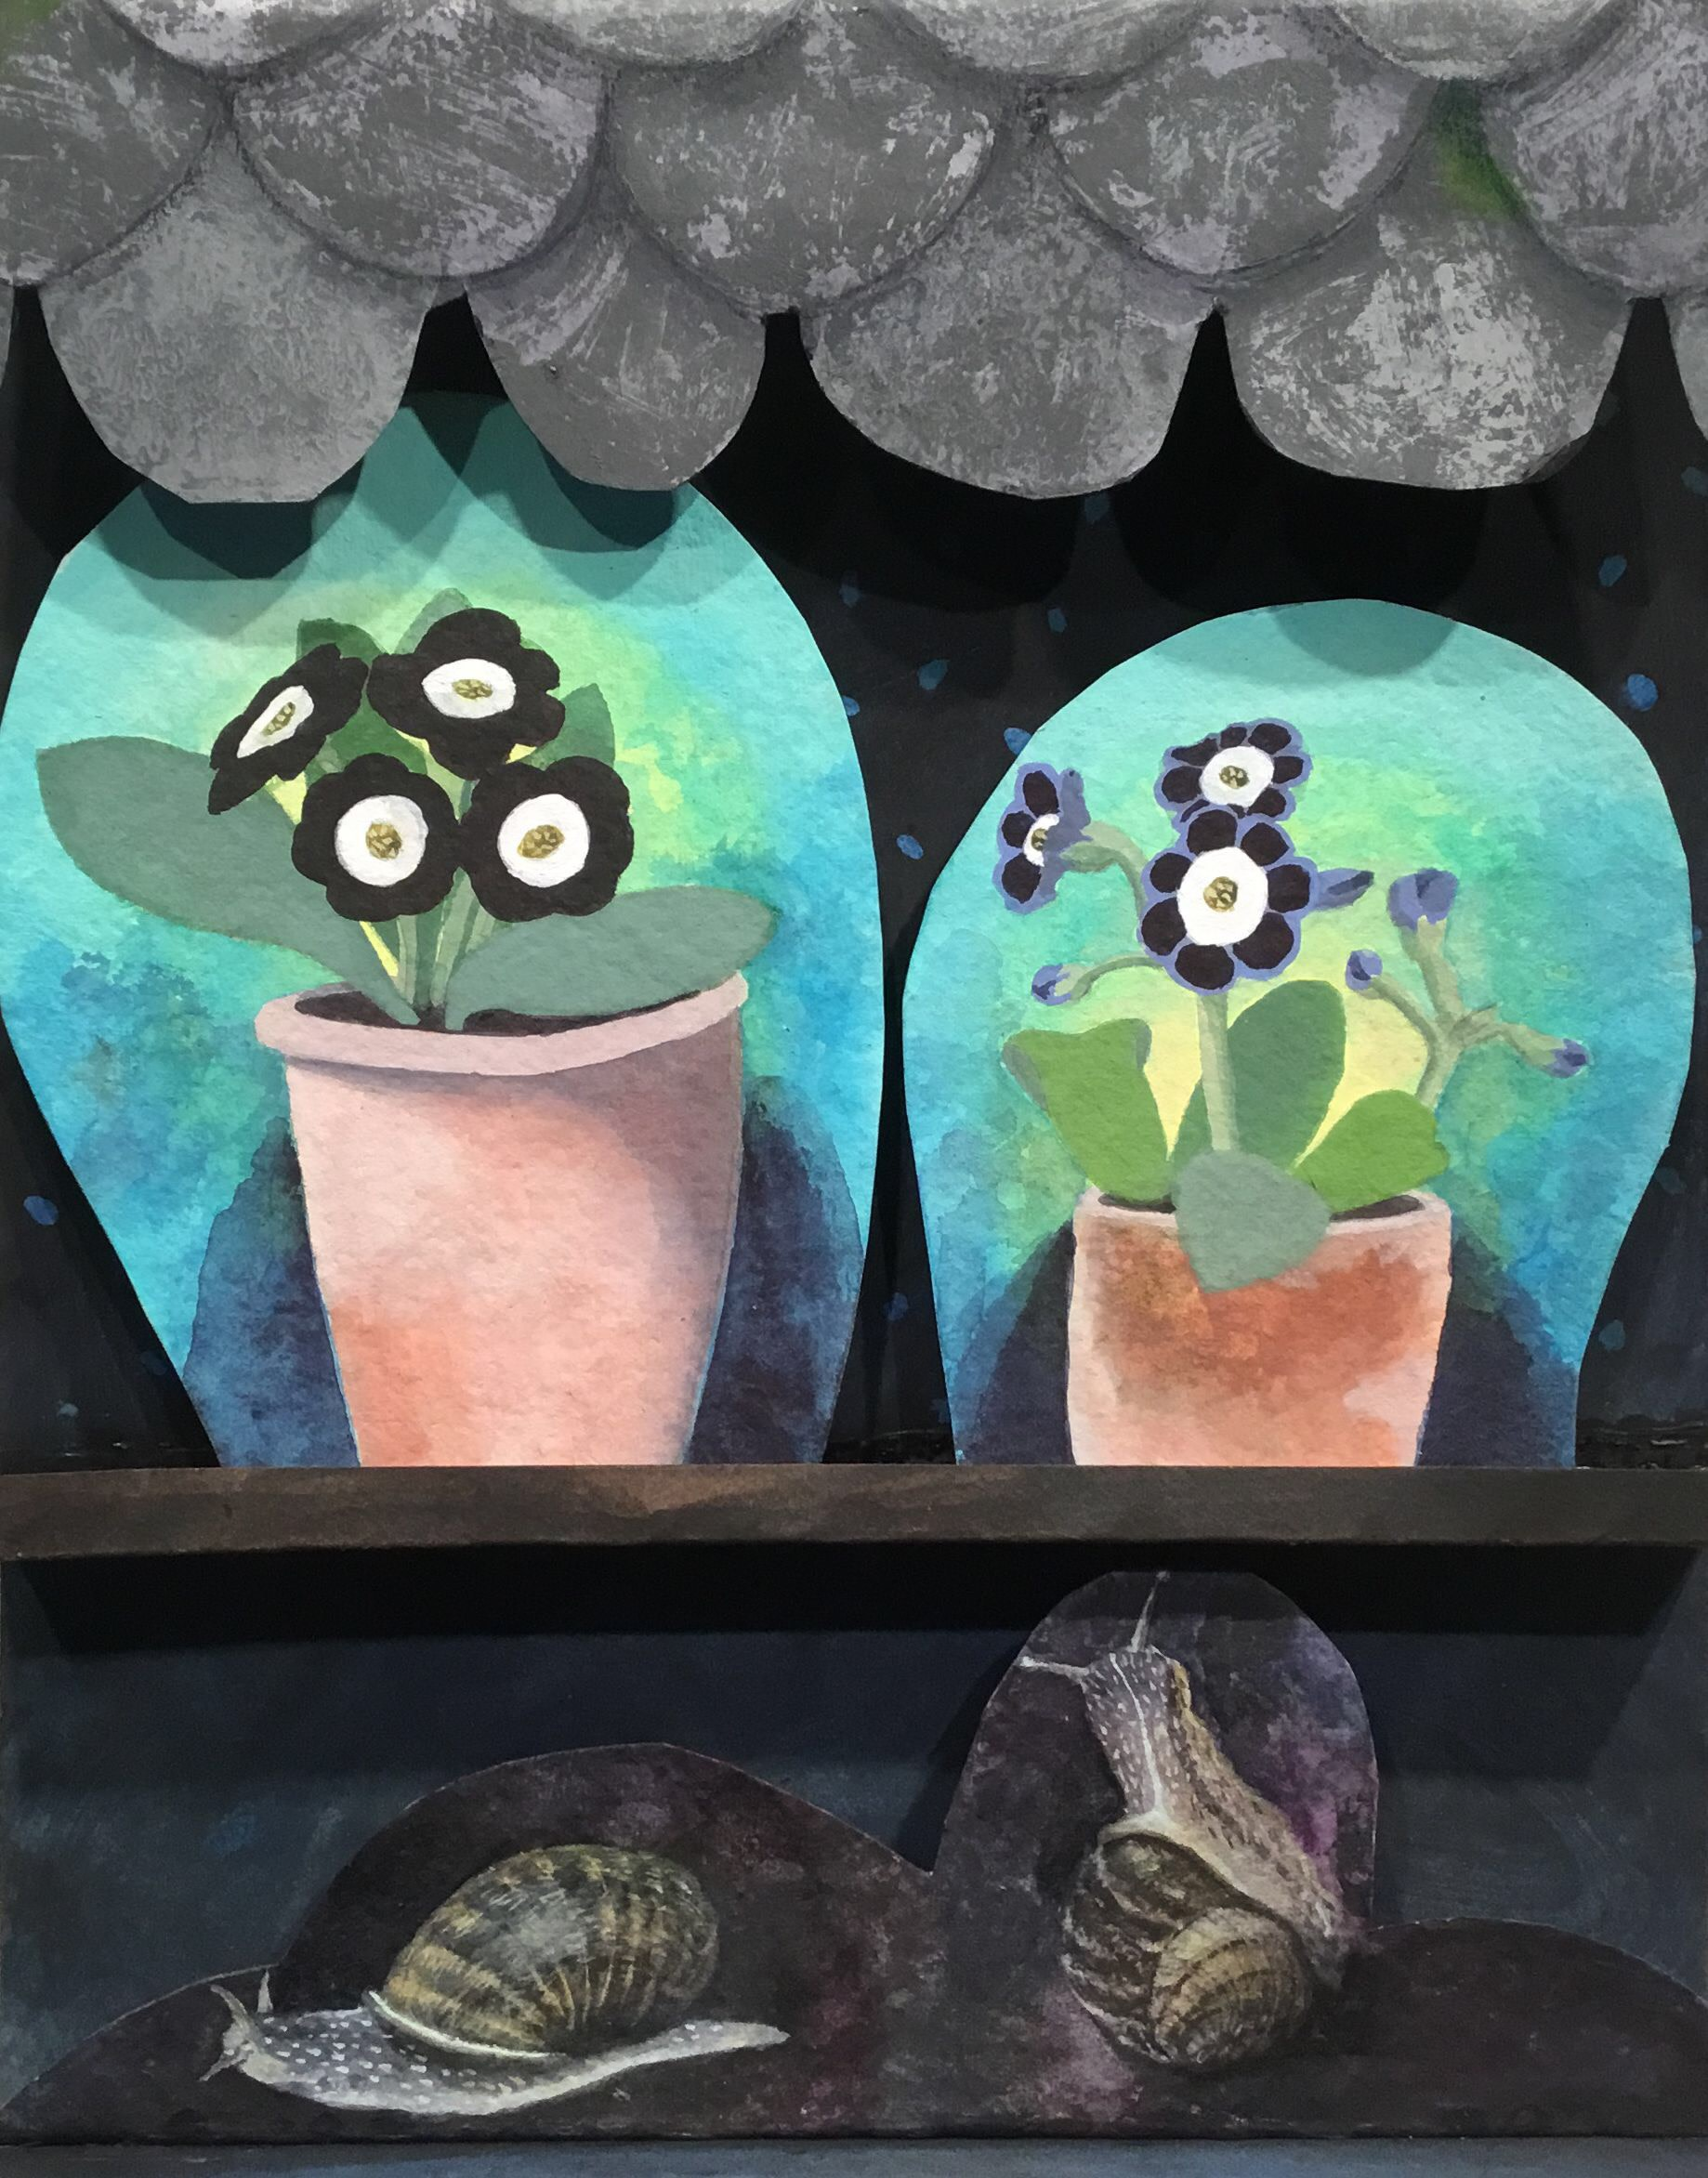 """<span class=""""link fancybox-details-link""""><a href=""""/artists/146-gertie-young/works/12336-gertie-young-snails-with-auriculas/"""">View Detail Page</a></span><div class=""""artist""""><span class=""""artist""""><strong>Gertie Young</strong></span></div><div class=""""title""""><em>Snails with Auriculas</em></div><div class=""""medium"""">acrylic, card assemblage in acrylic box<br /> </div><div class=""""dimensions"""">Frame: 32 x 26 cm<br /> Artwork: 32 x 26 cm<br /> </div><div class=""""price"""">£350.00</div>"""